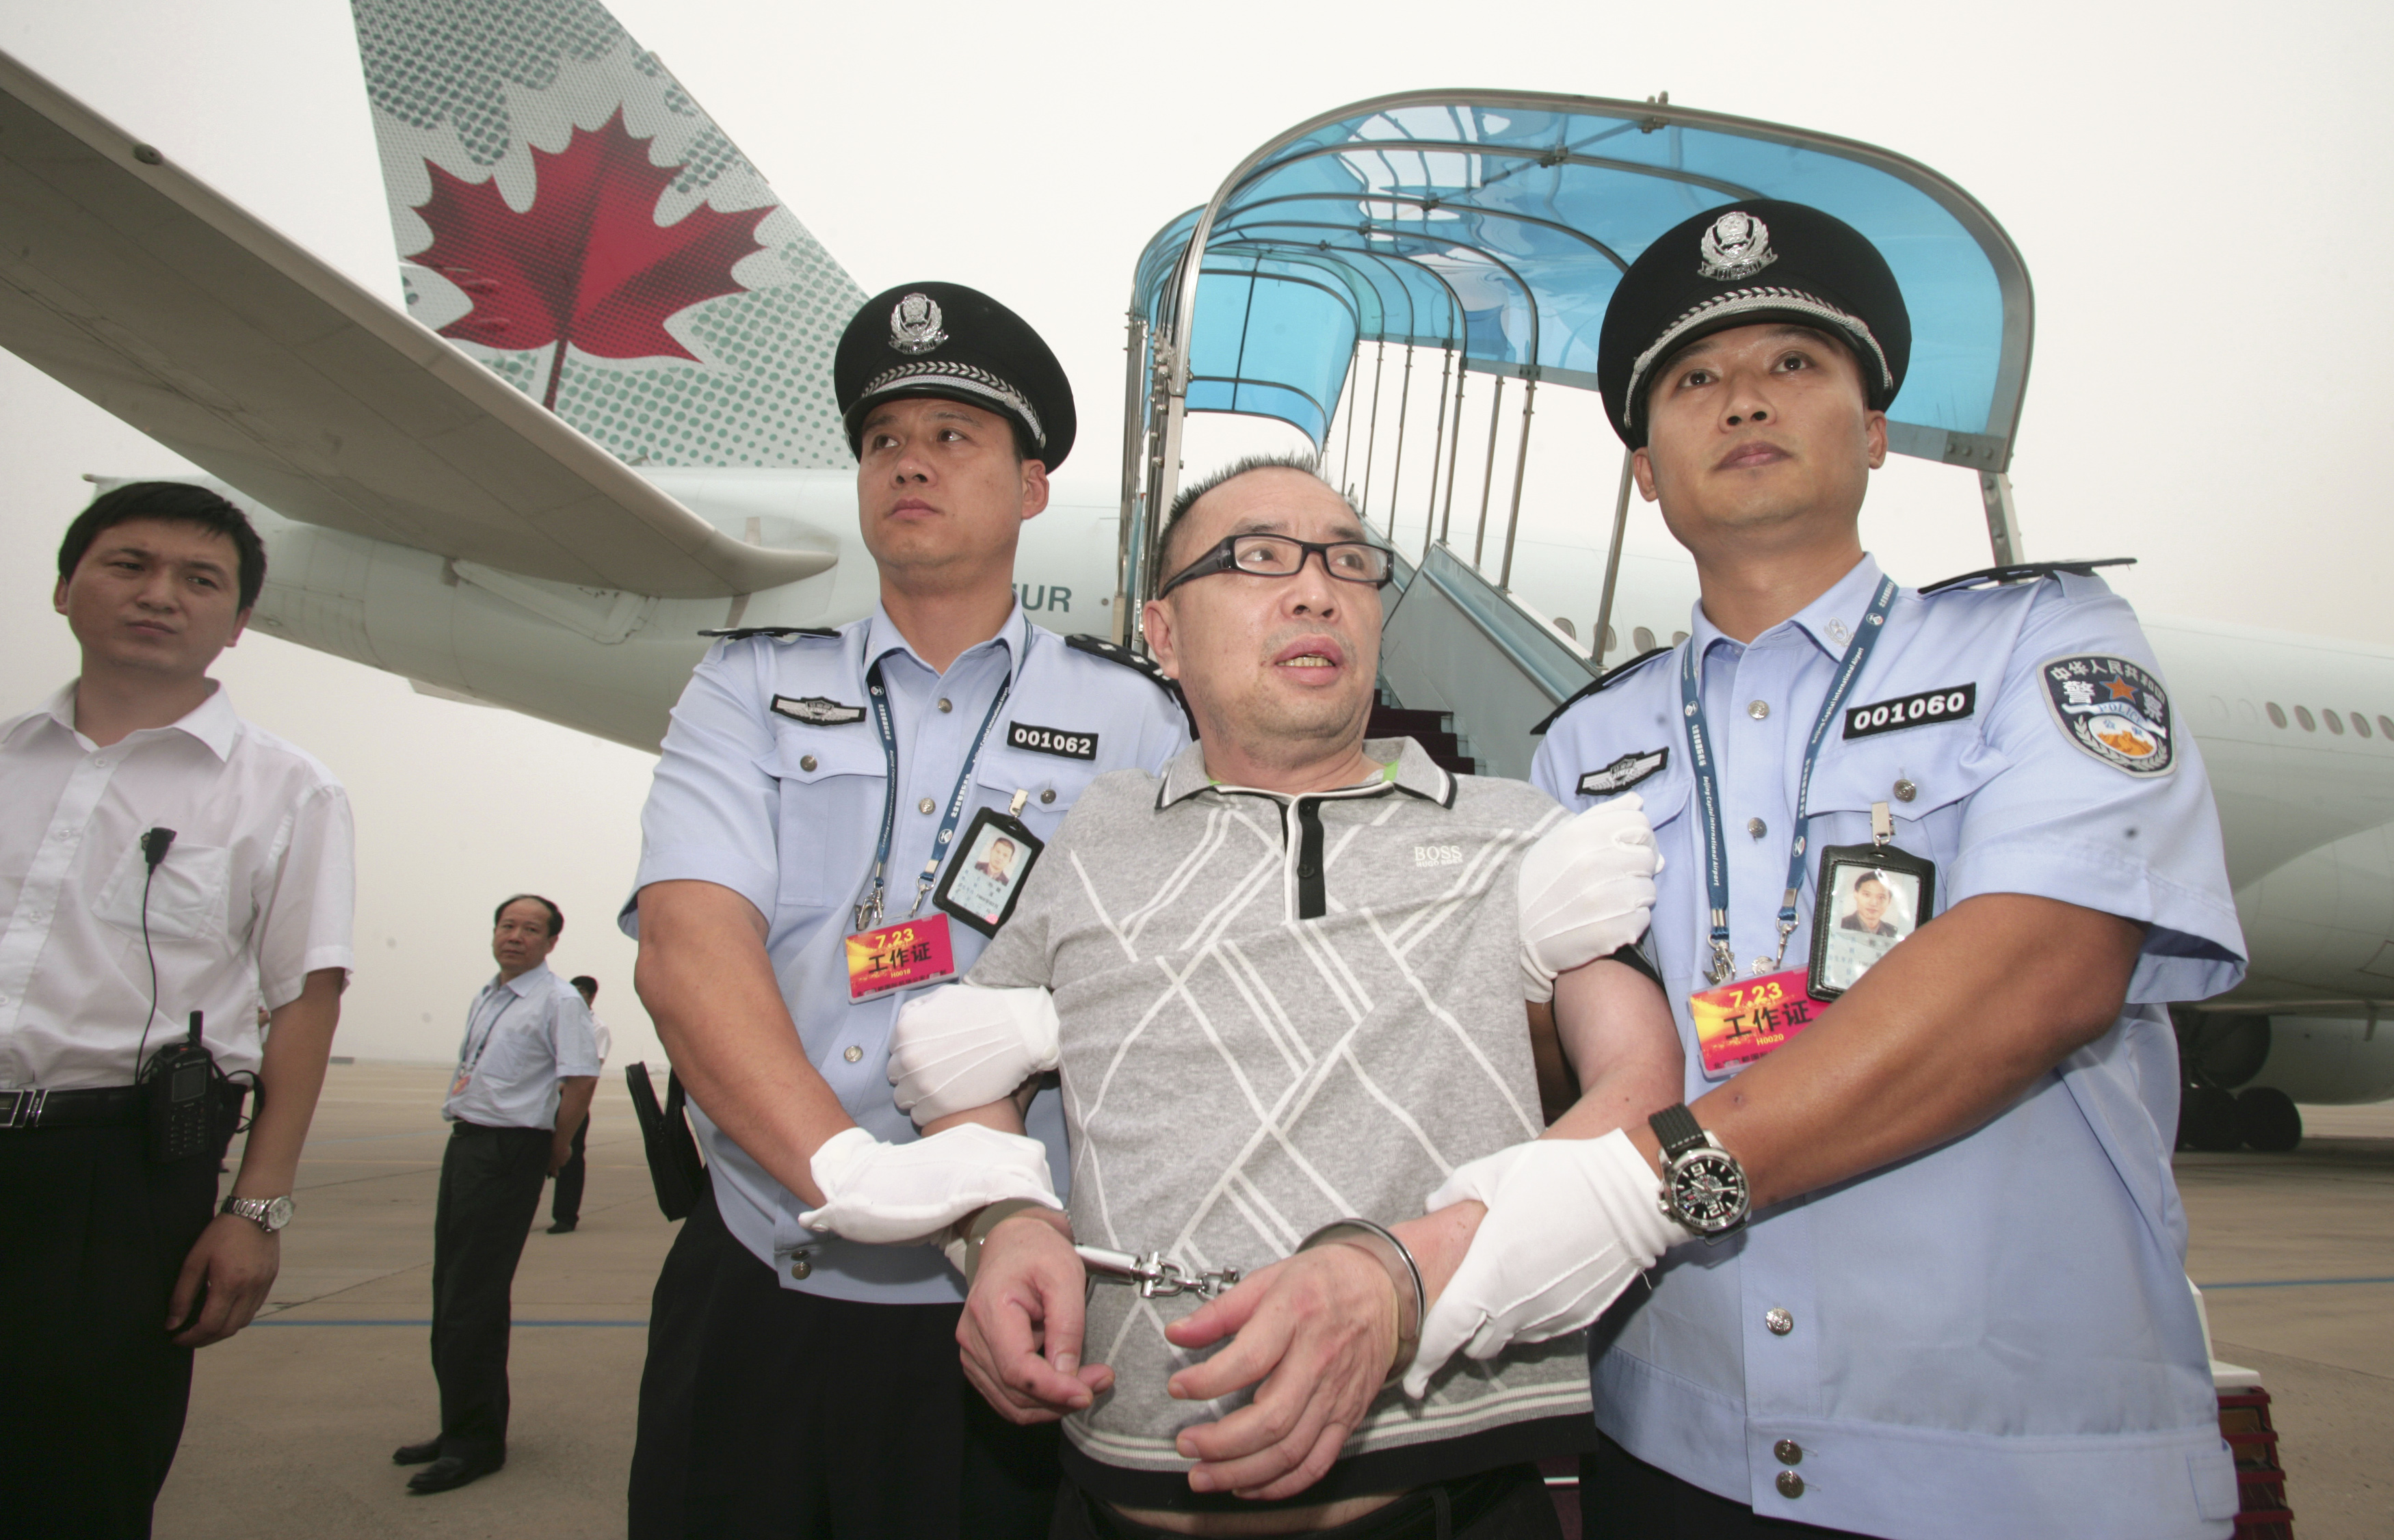 In this file photo, on July 23, 2011, Chinese fugitive Lai Changxing at Beijing International Airport after he was flown back to Beijing from Canada. He was jailed for life the following year